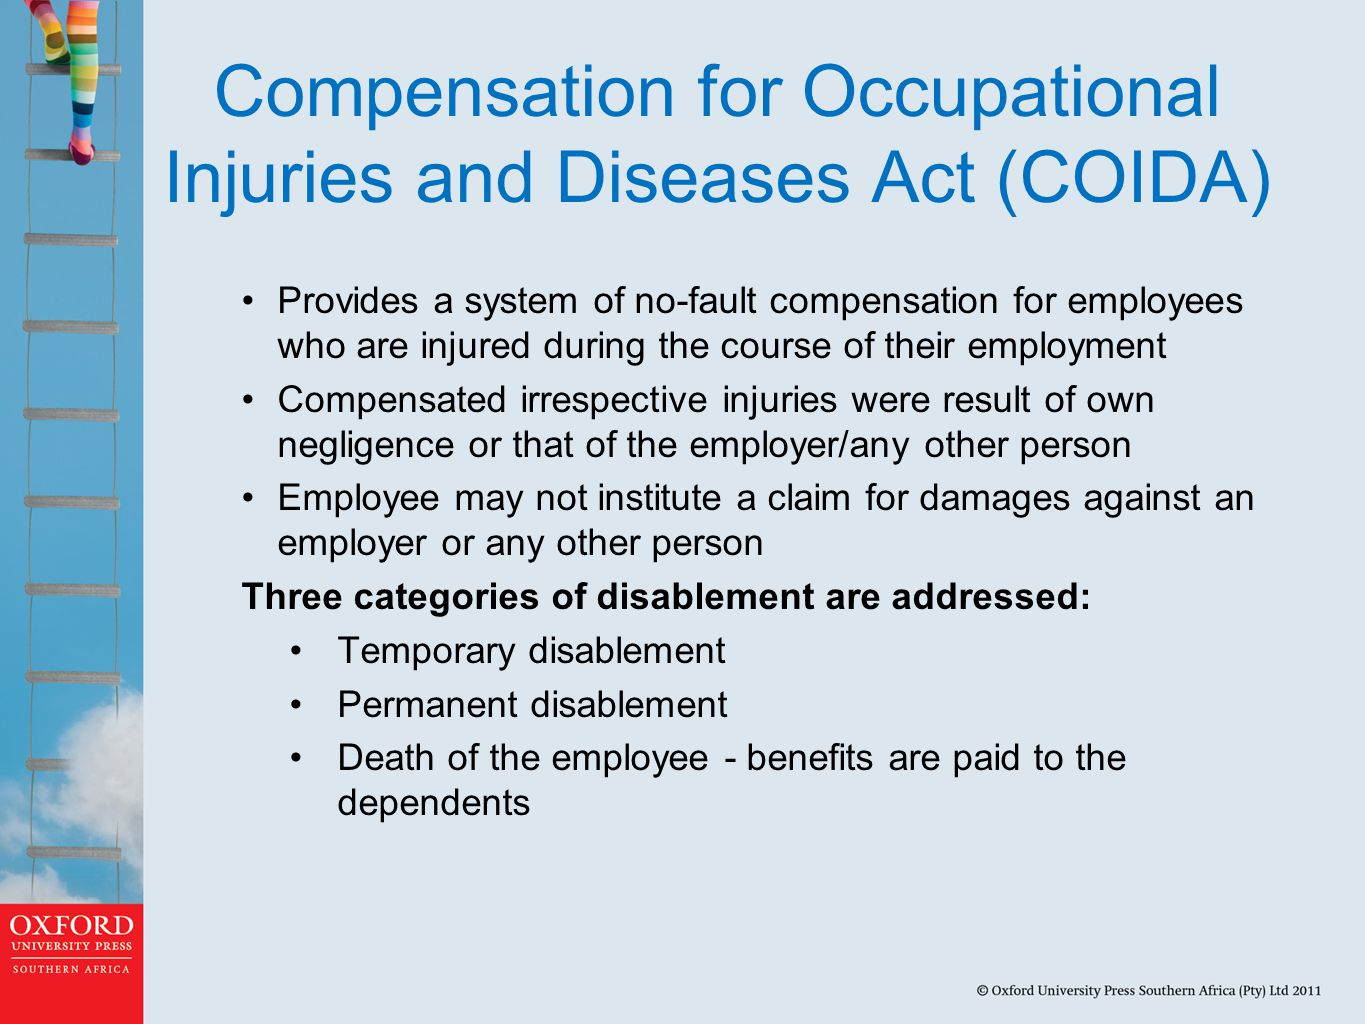 Compensation for Occupational Injuries and Diseases Act (COIDA)